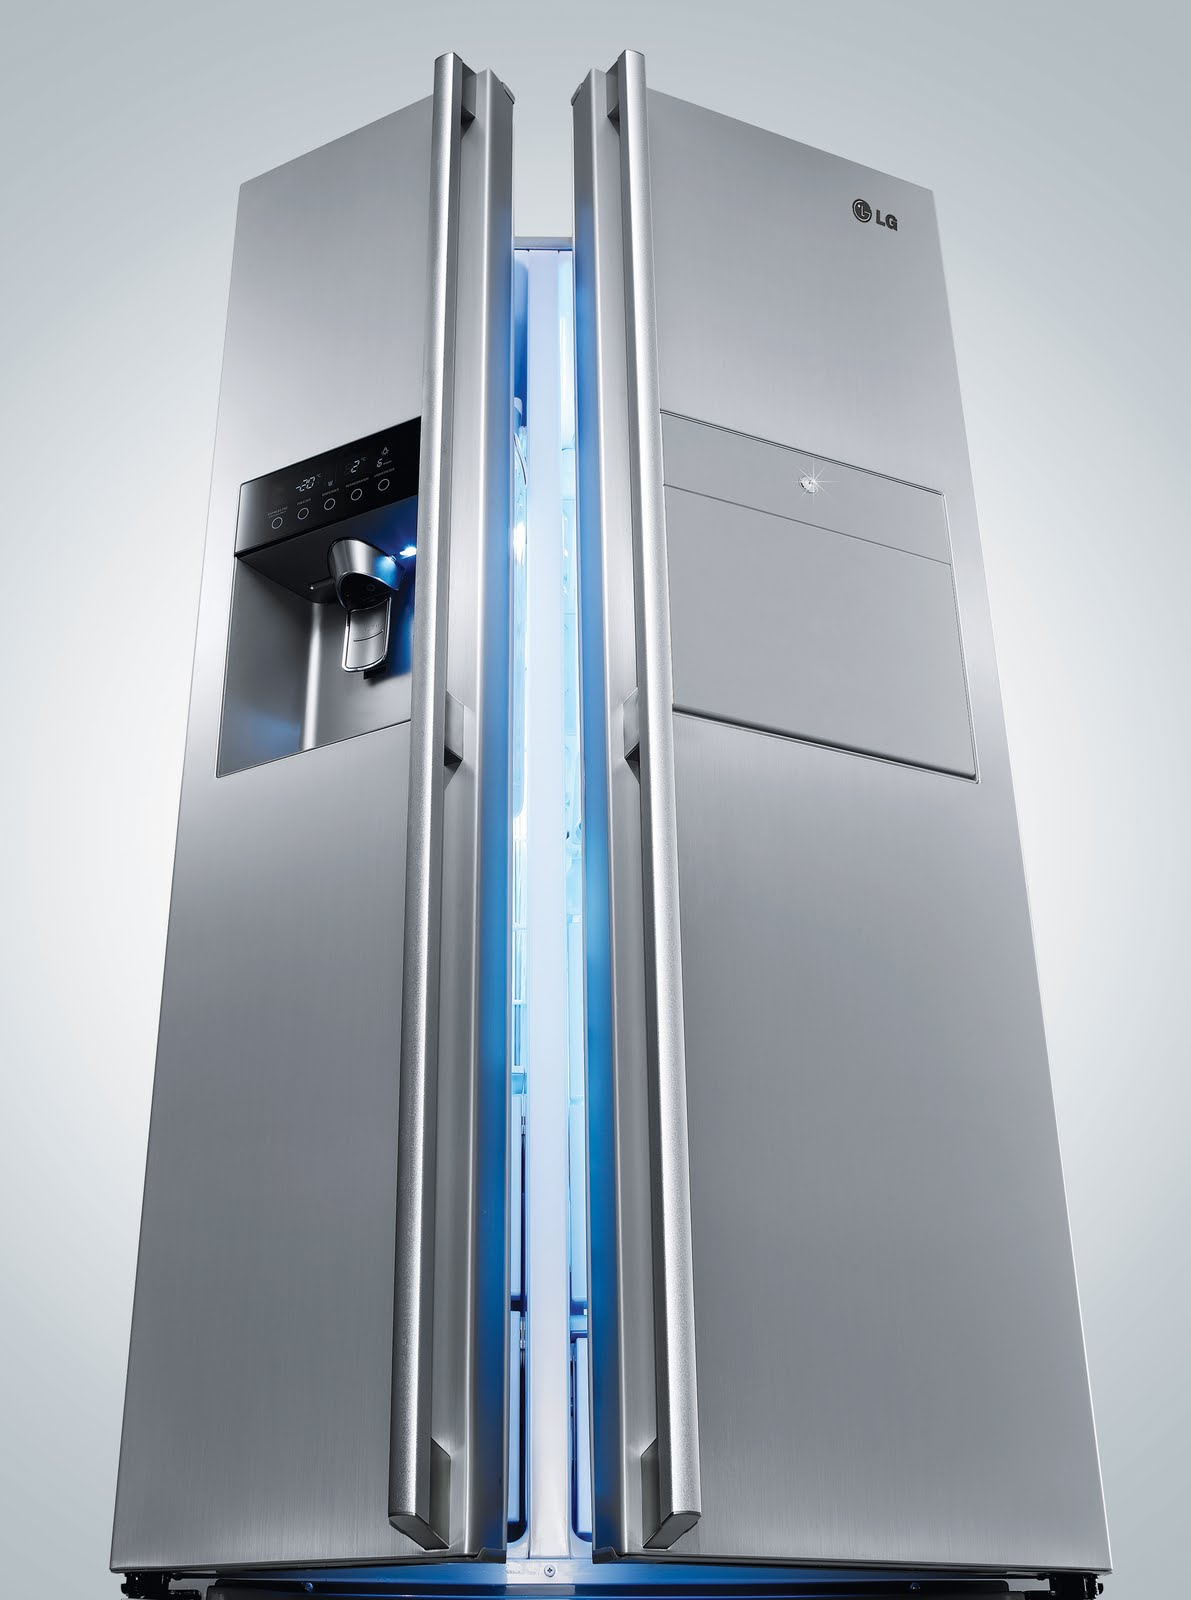 lg refrigerator inverter linear. refrigerators are big consumers of power. with its newest range refrigerators, lg\u0027s breakthrough inverter linear compressor technology ensures consumers\u0027 lg refrigerator h